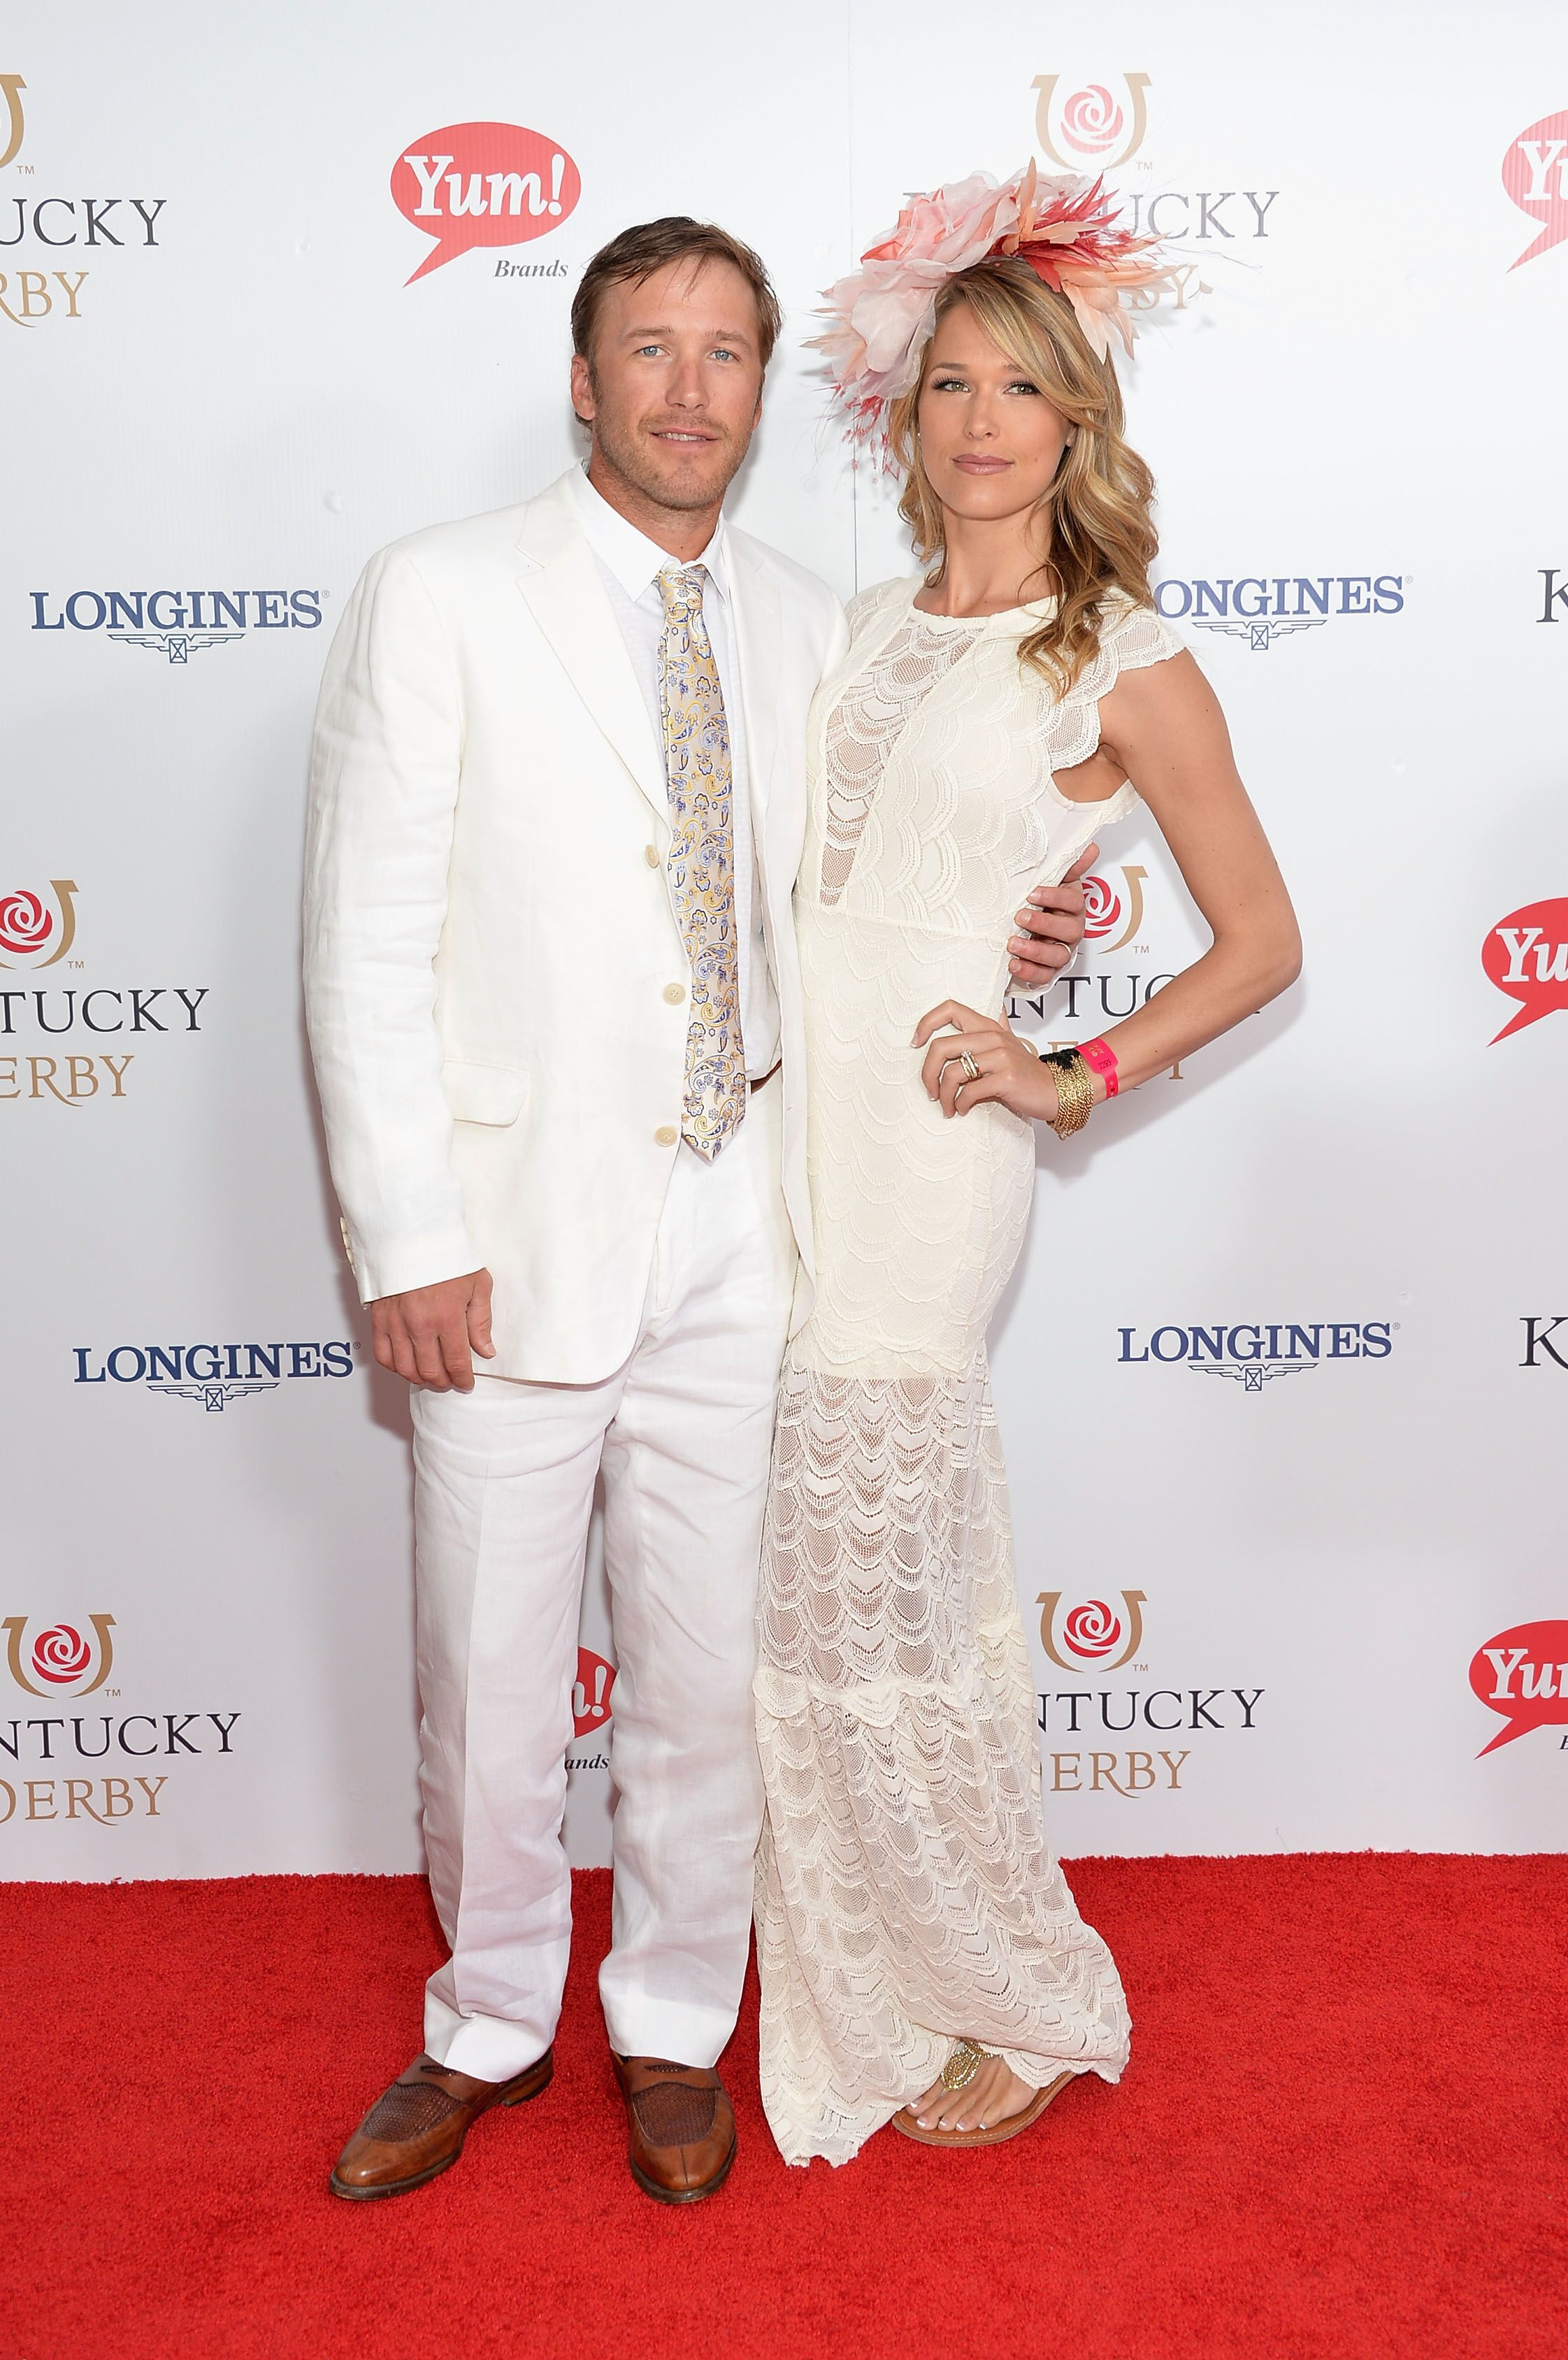 Bode and Morgan Miller at the 140th Kentucky Derby at Churchill Downs on May 3, 2014 in Louisville, Kentucky | Photo: Getty Images